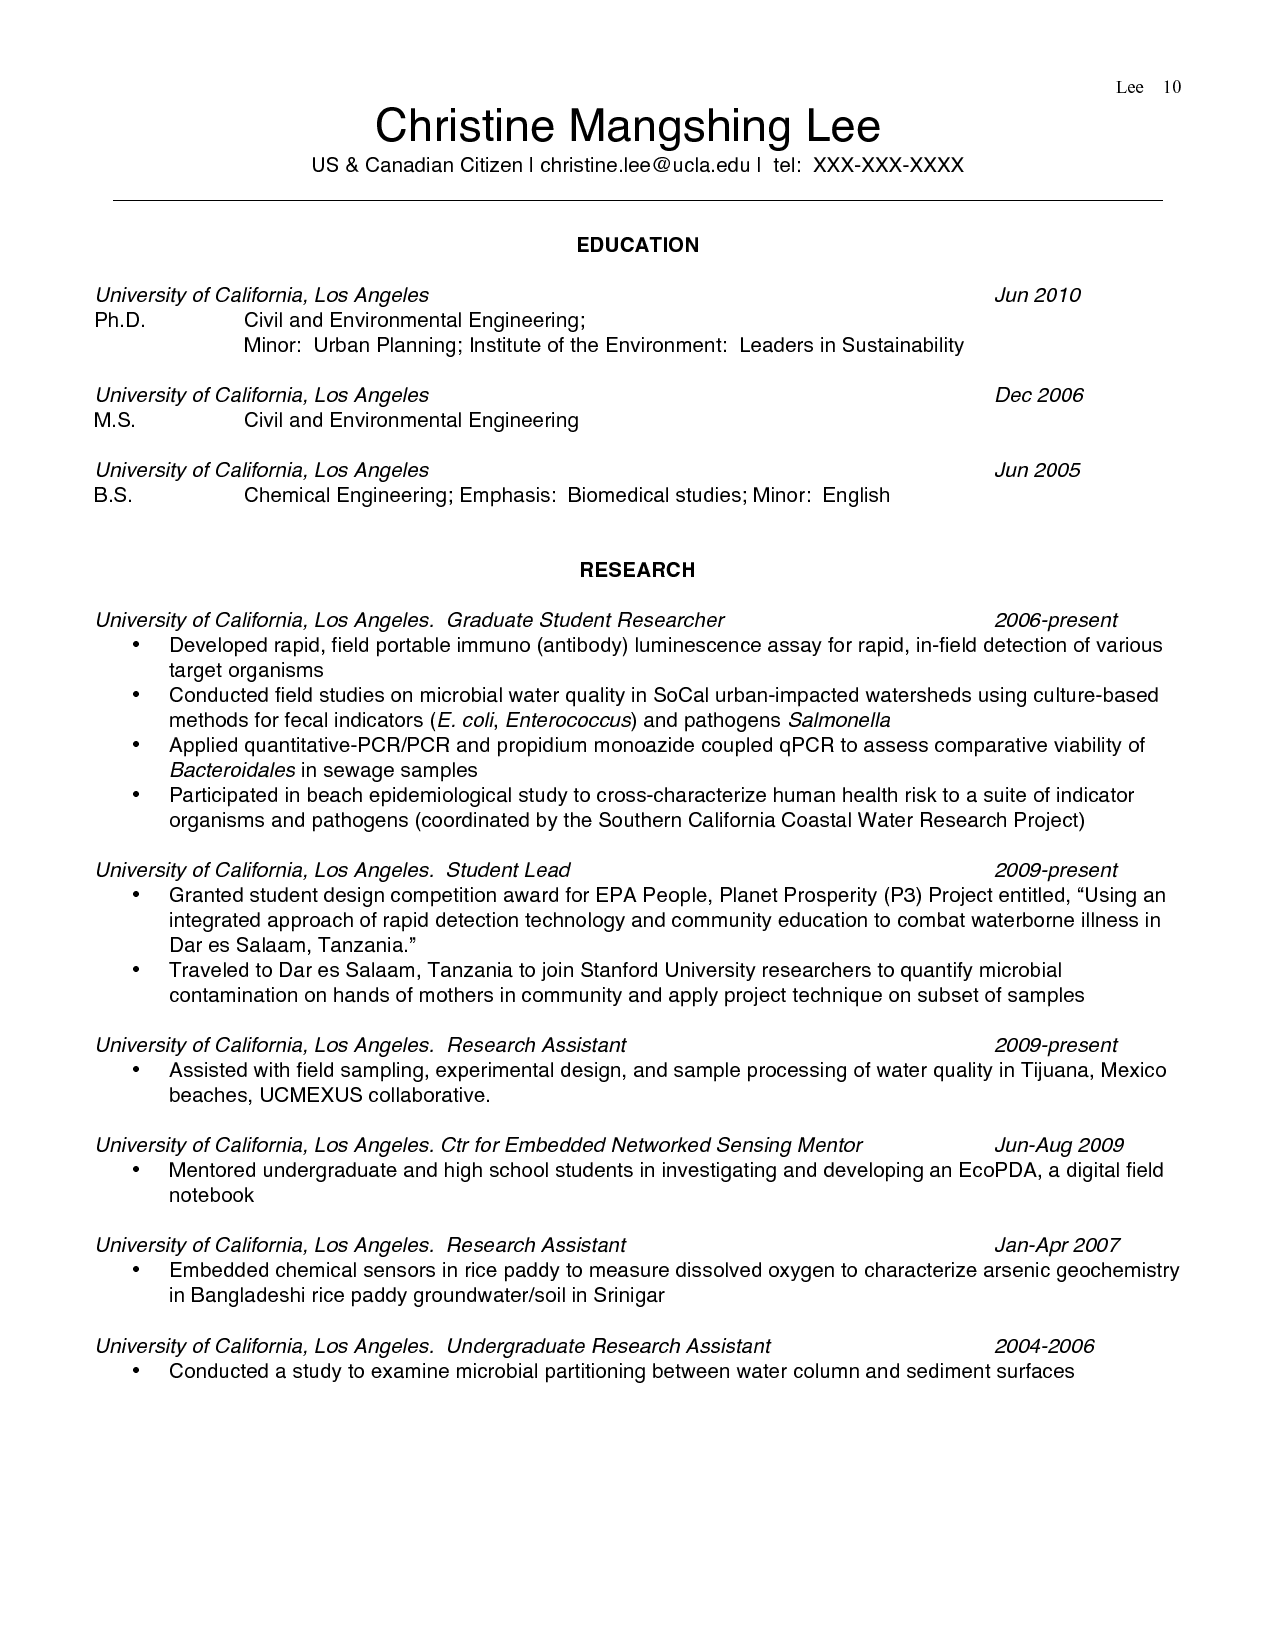 Five paragraph essay requirements for fifth grade real estate click here to download this licensed realtor resume template http www resumetemplates com real estate resume yelopaper Gallery